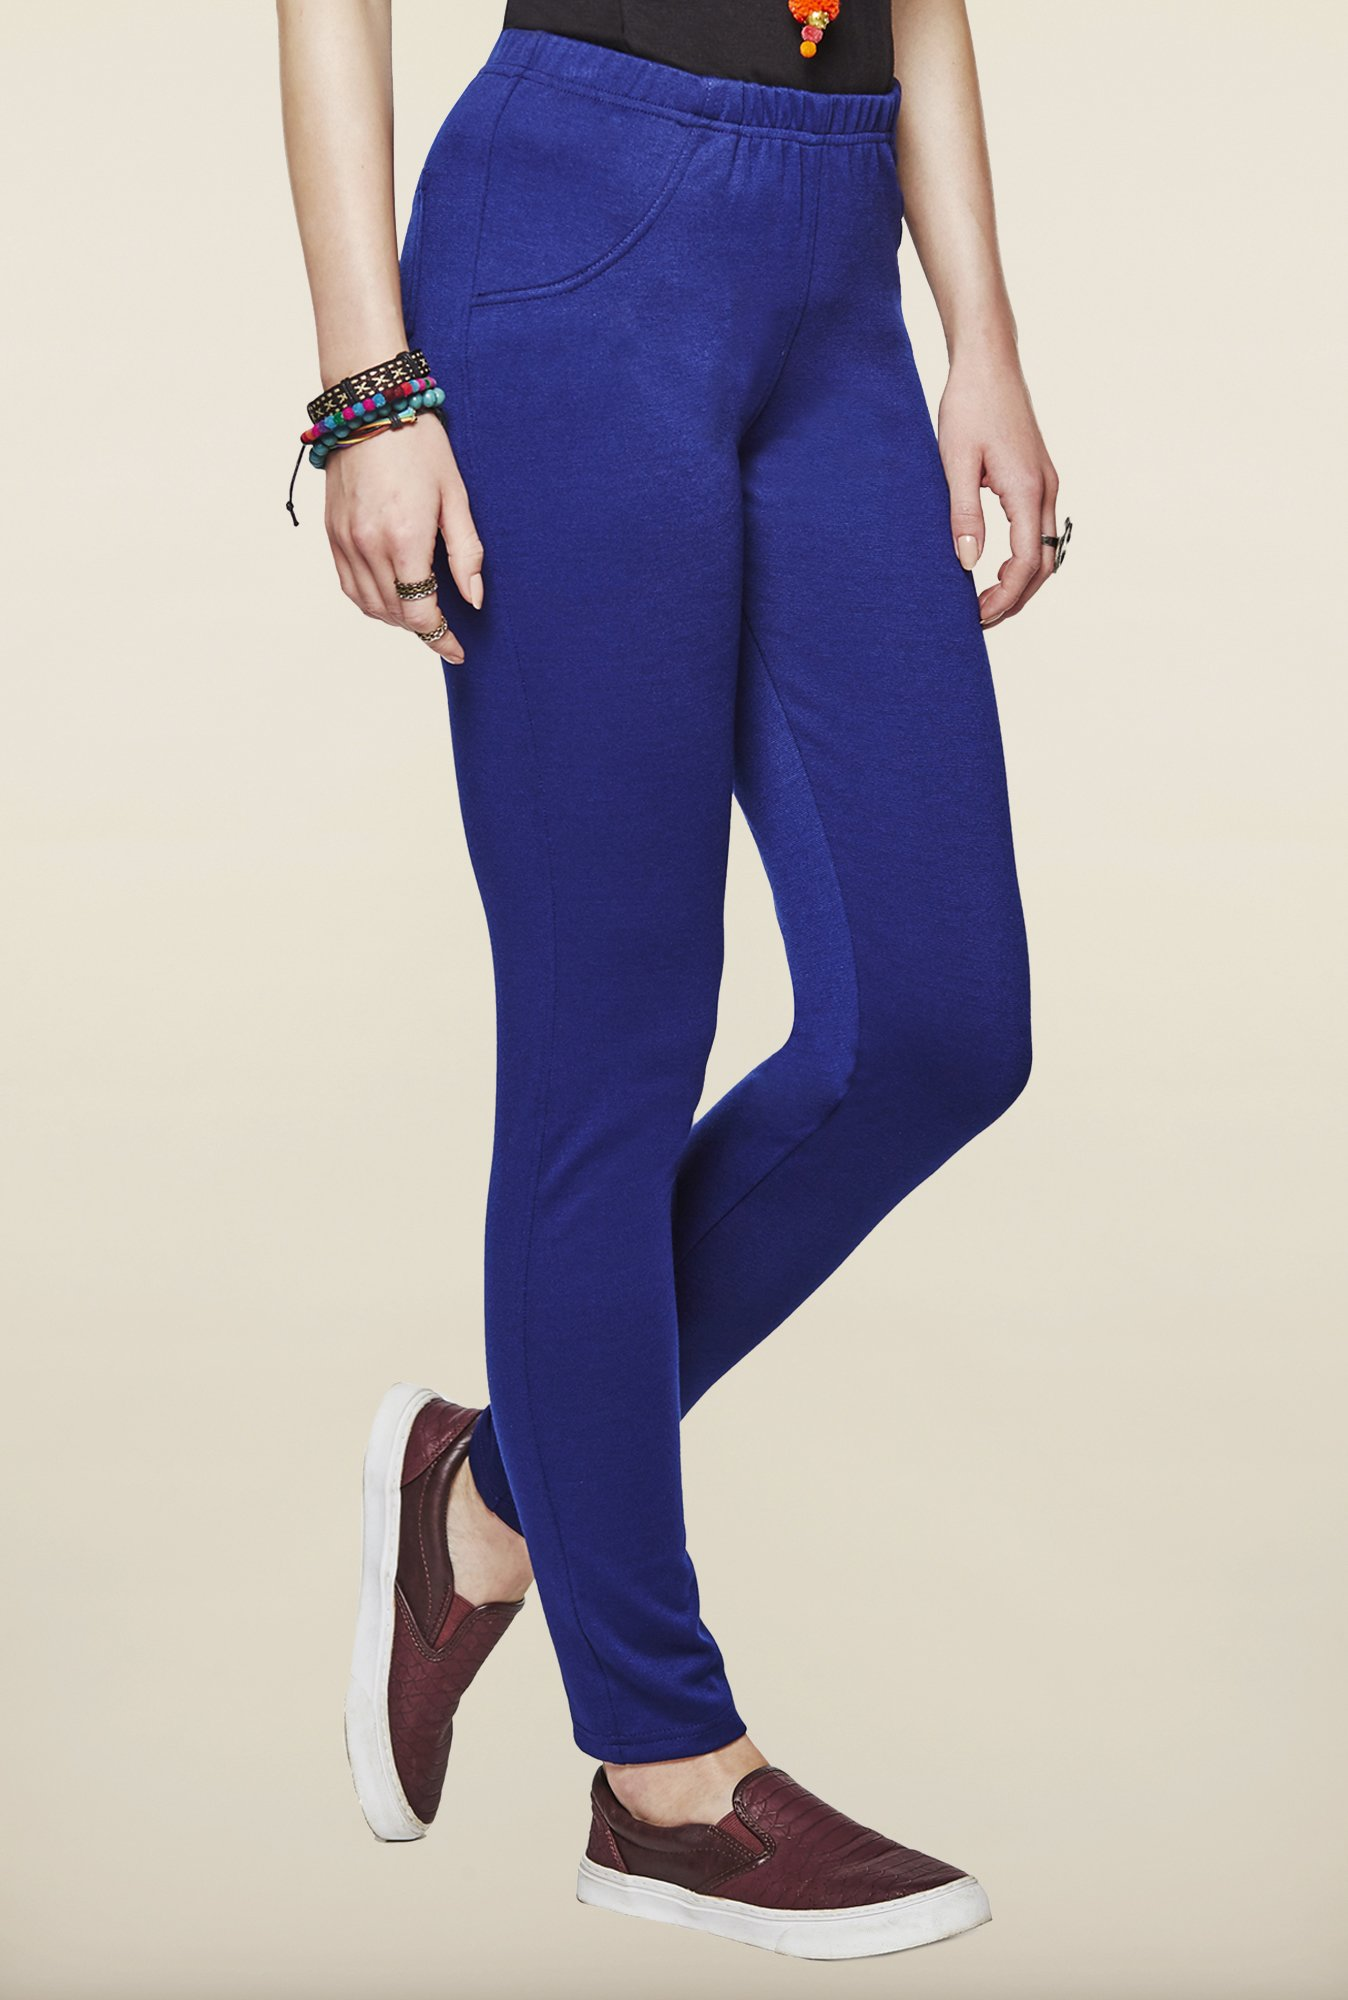 Global Desi Indigo Solid Leggings